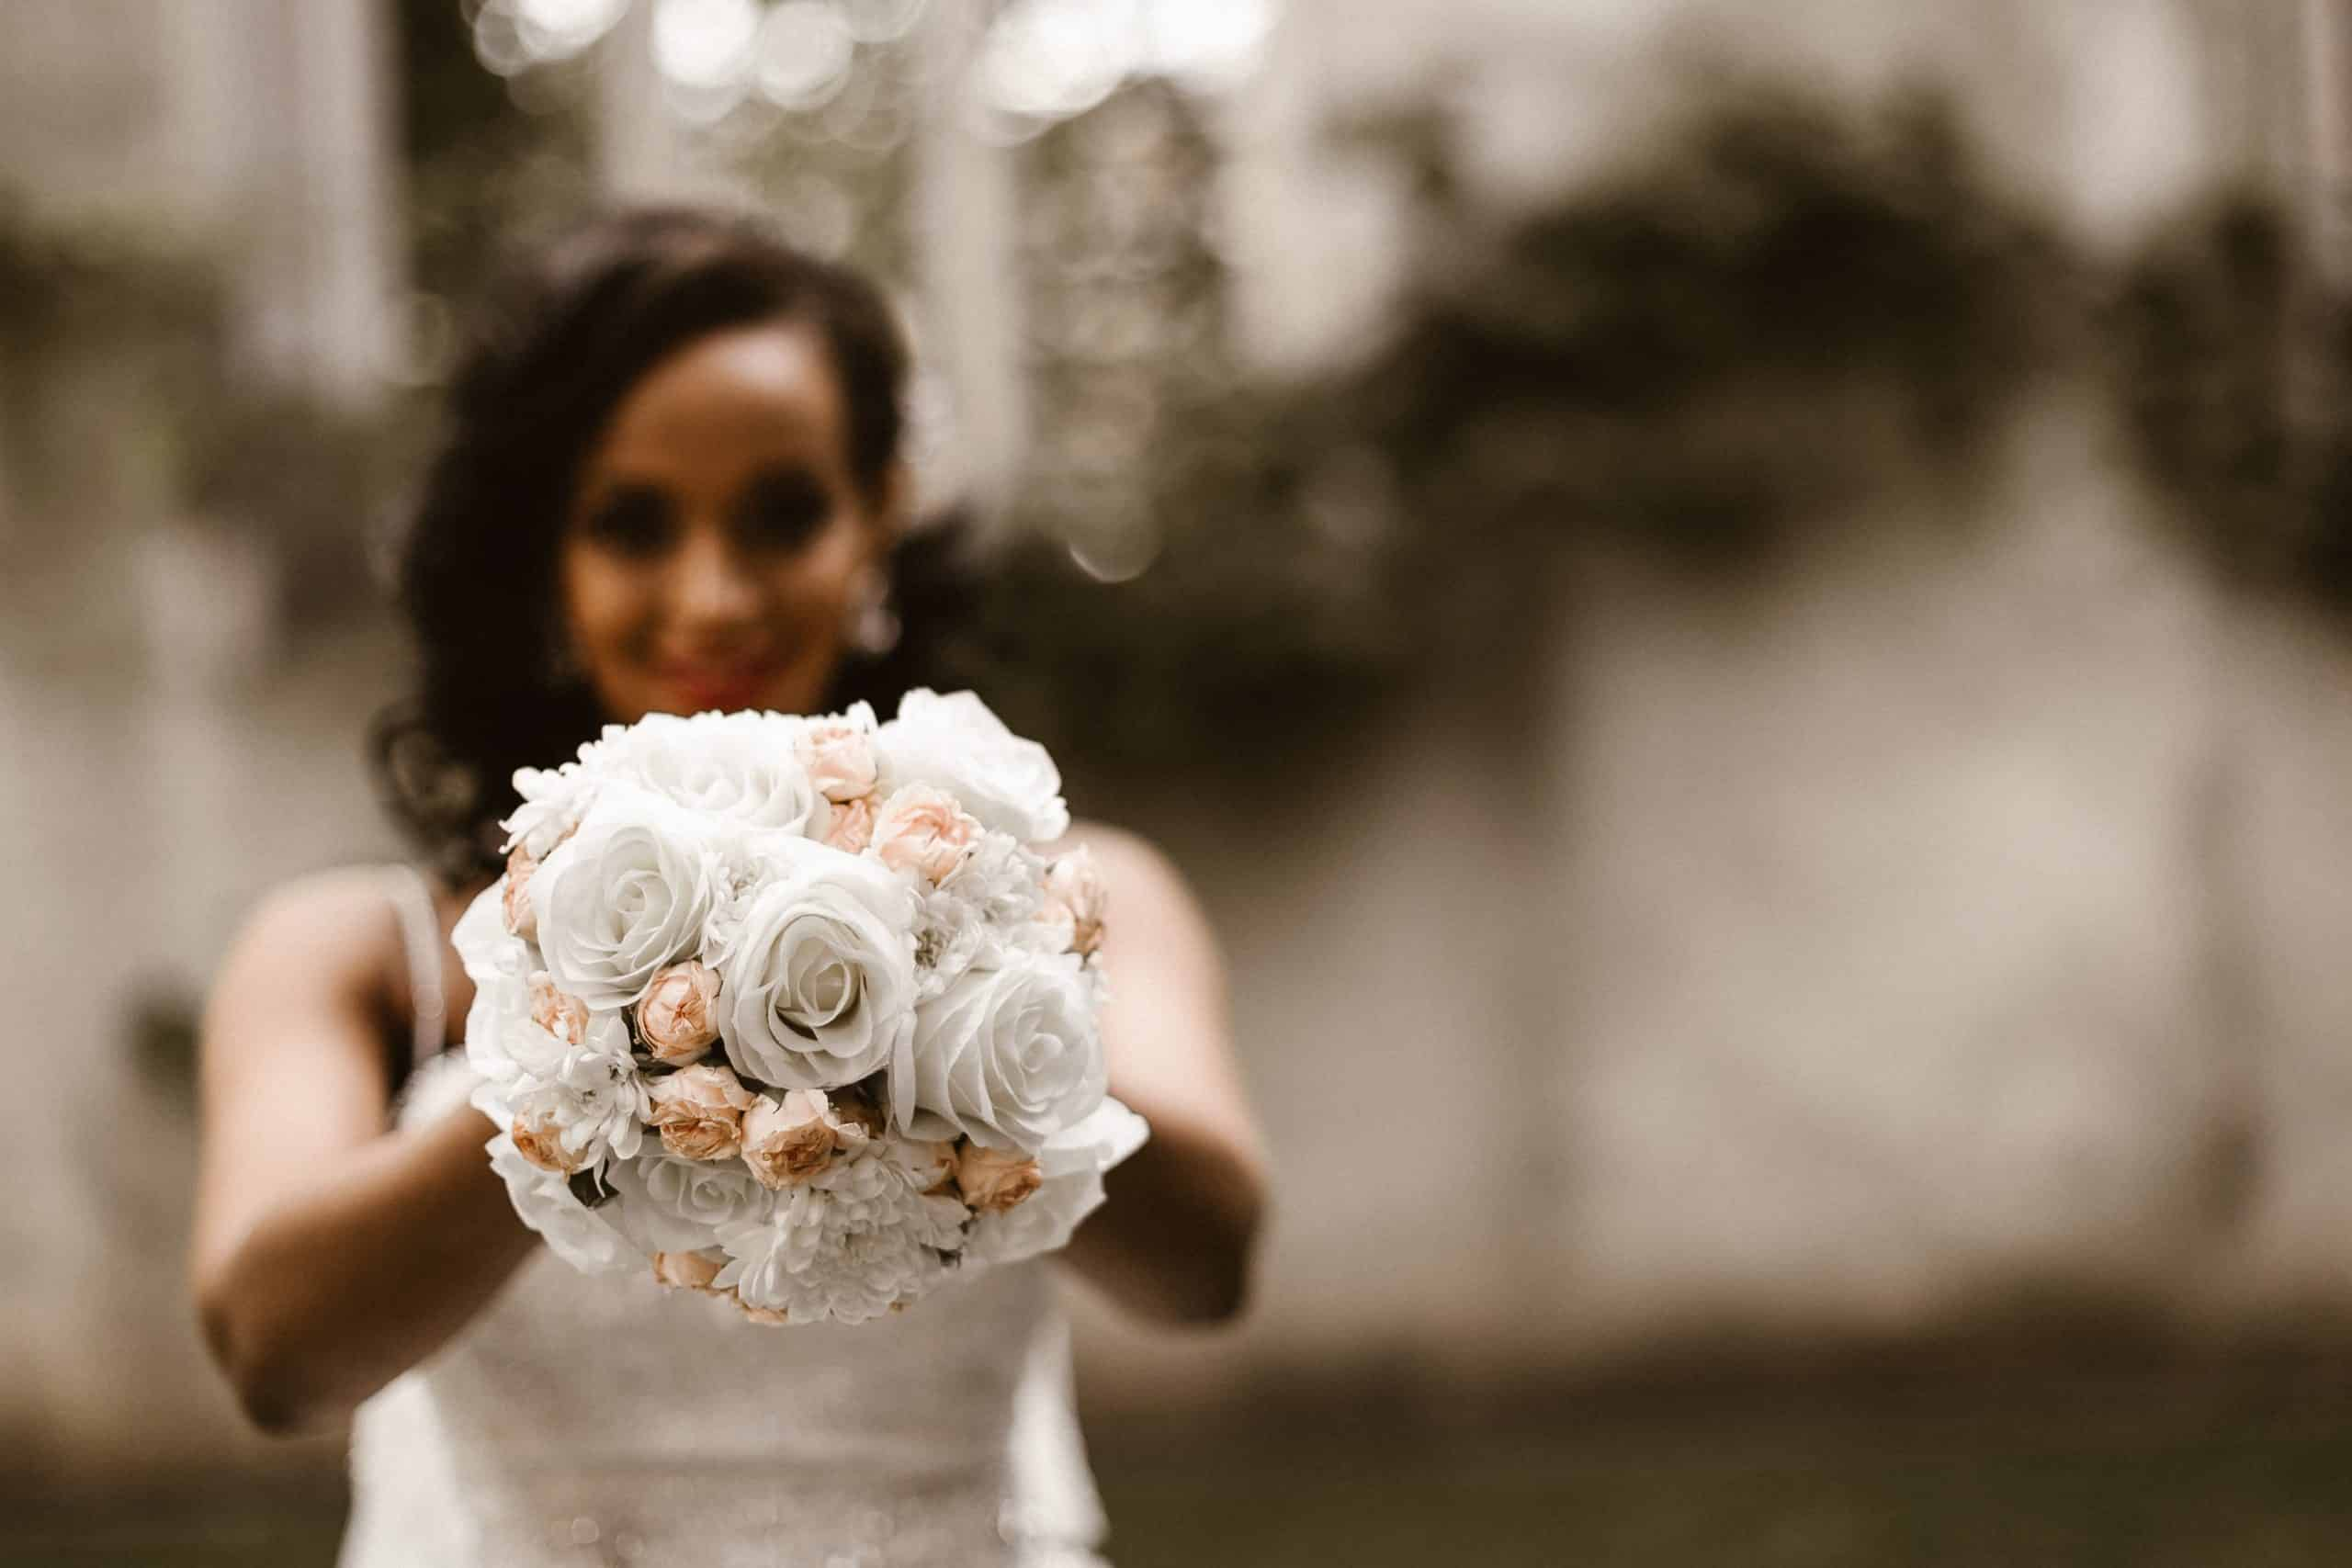 Choosing Your Wedding Flower For Special Day